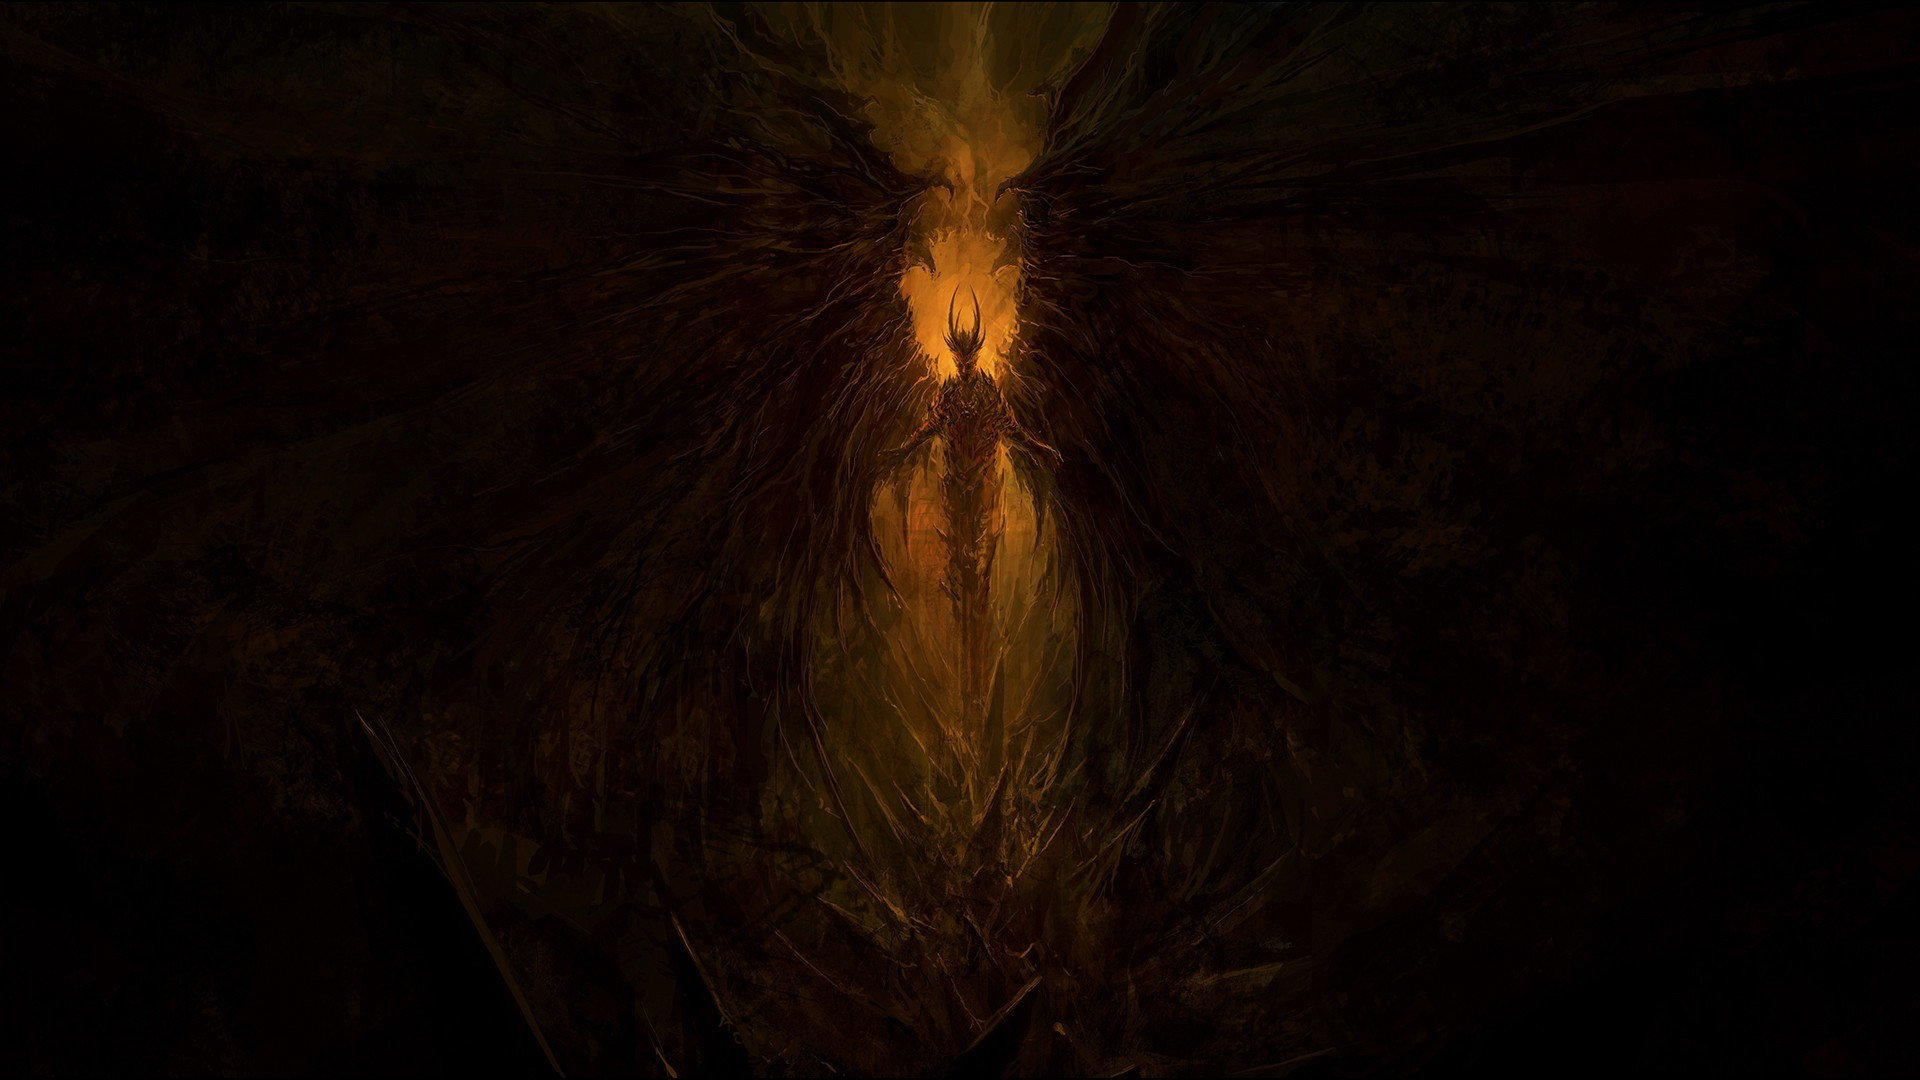 17285 Screensavers and Wallpapers Demons for phone. Download Fantasy, Demons pictures for free